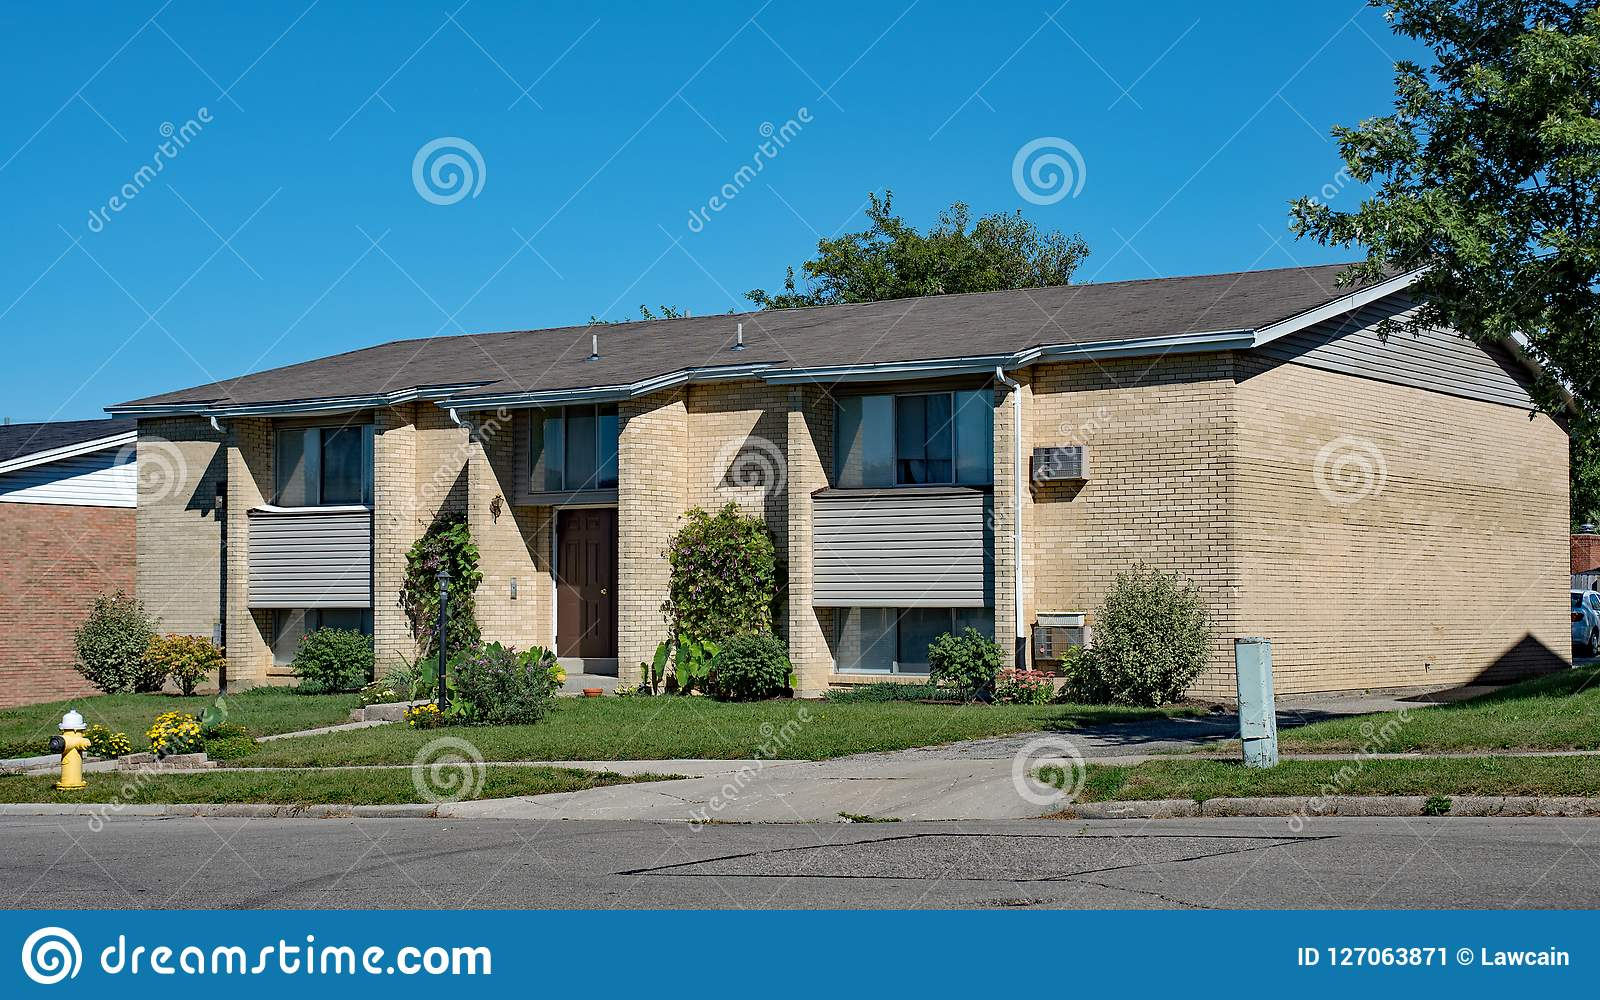 Tan Brick Low Income Housing Apartments Stock Image - Image